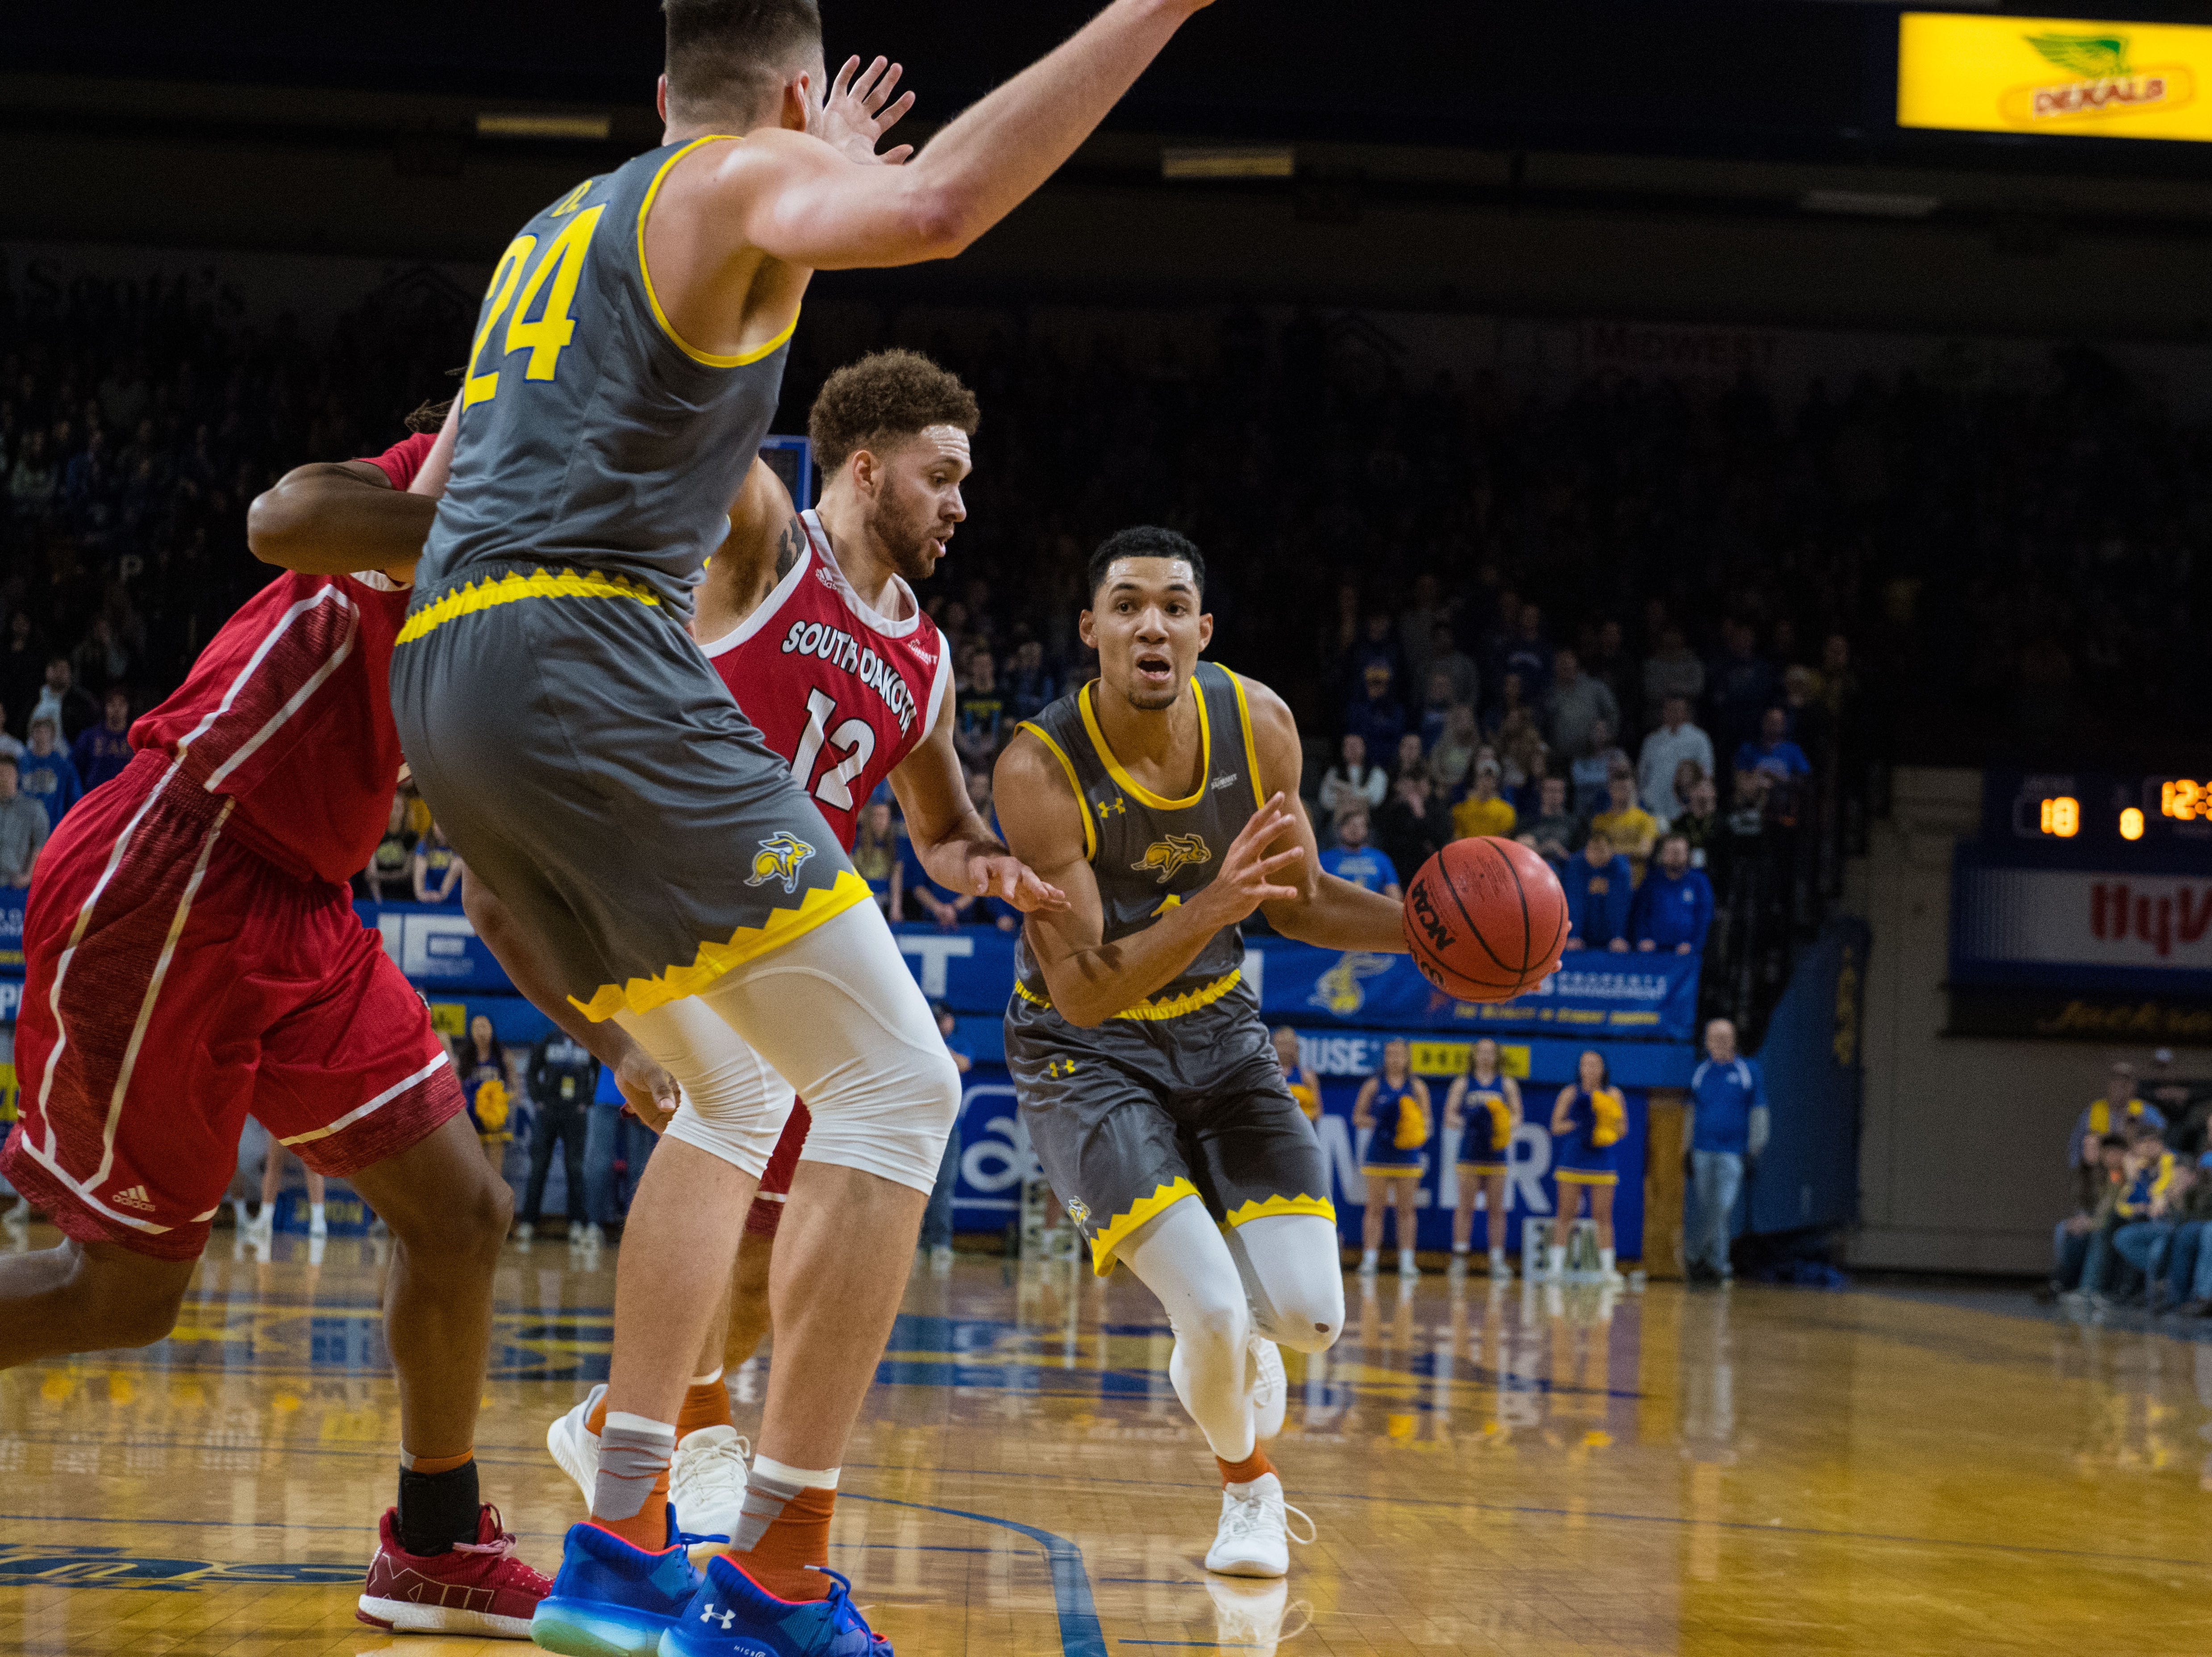 SDSU's Skyler Flatten (1) dribbles the ball past USD players during a game, Saturday, Feb. 23, 2019 in Brookings, S.D.